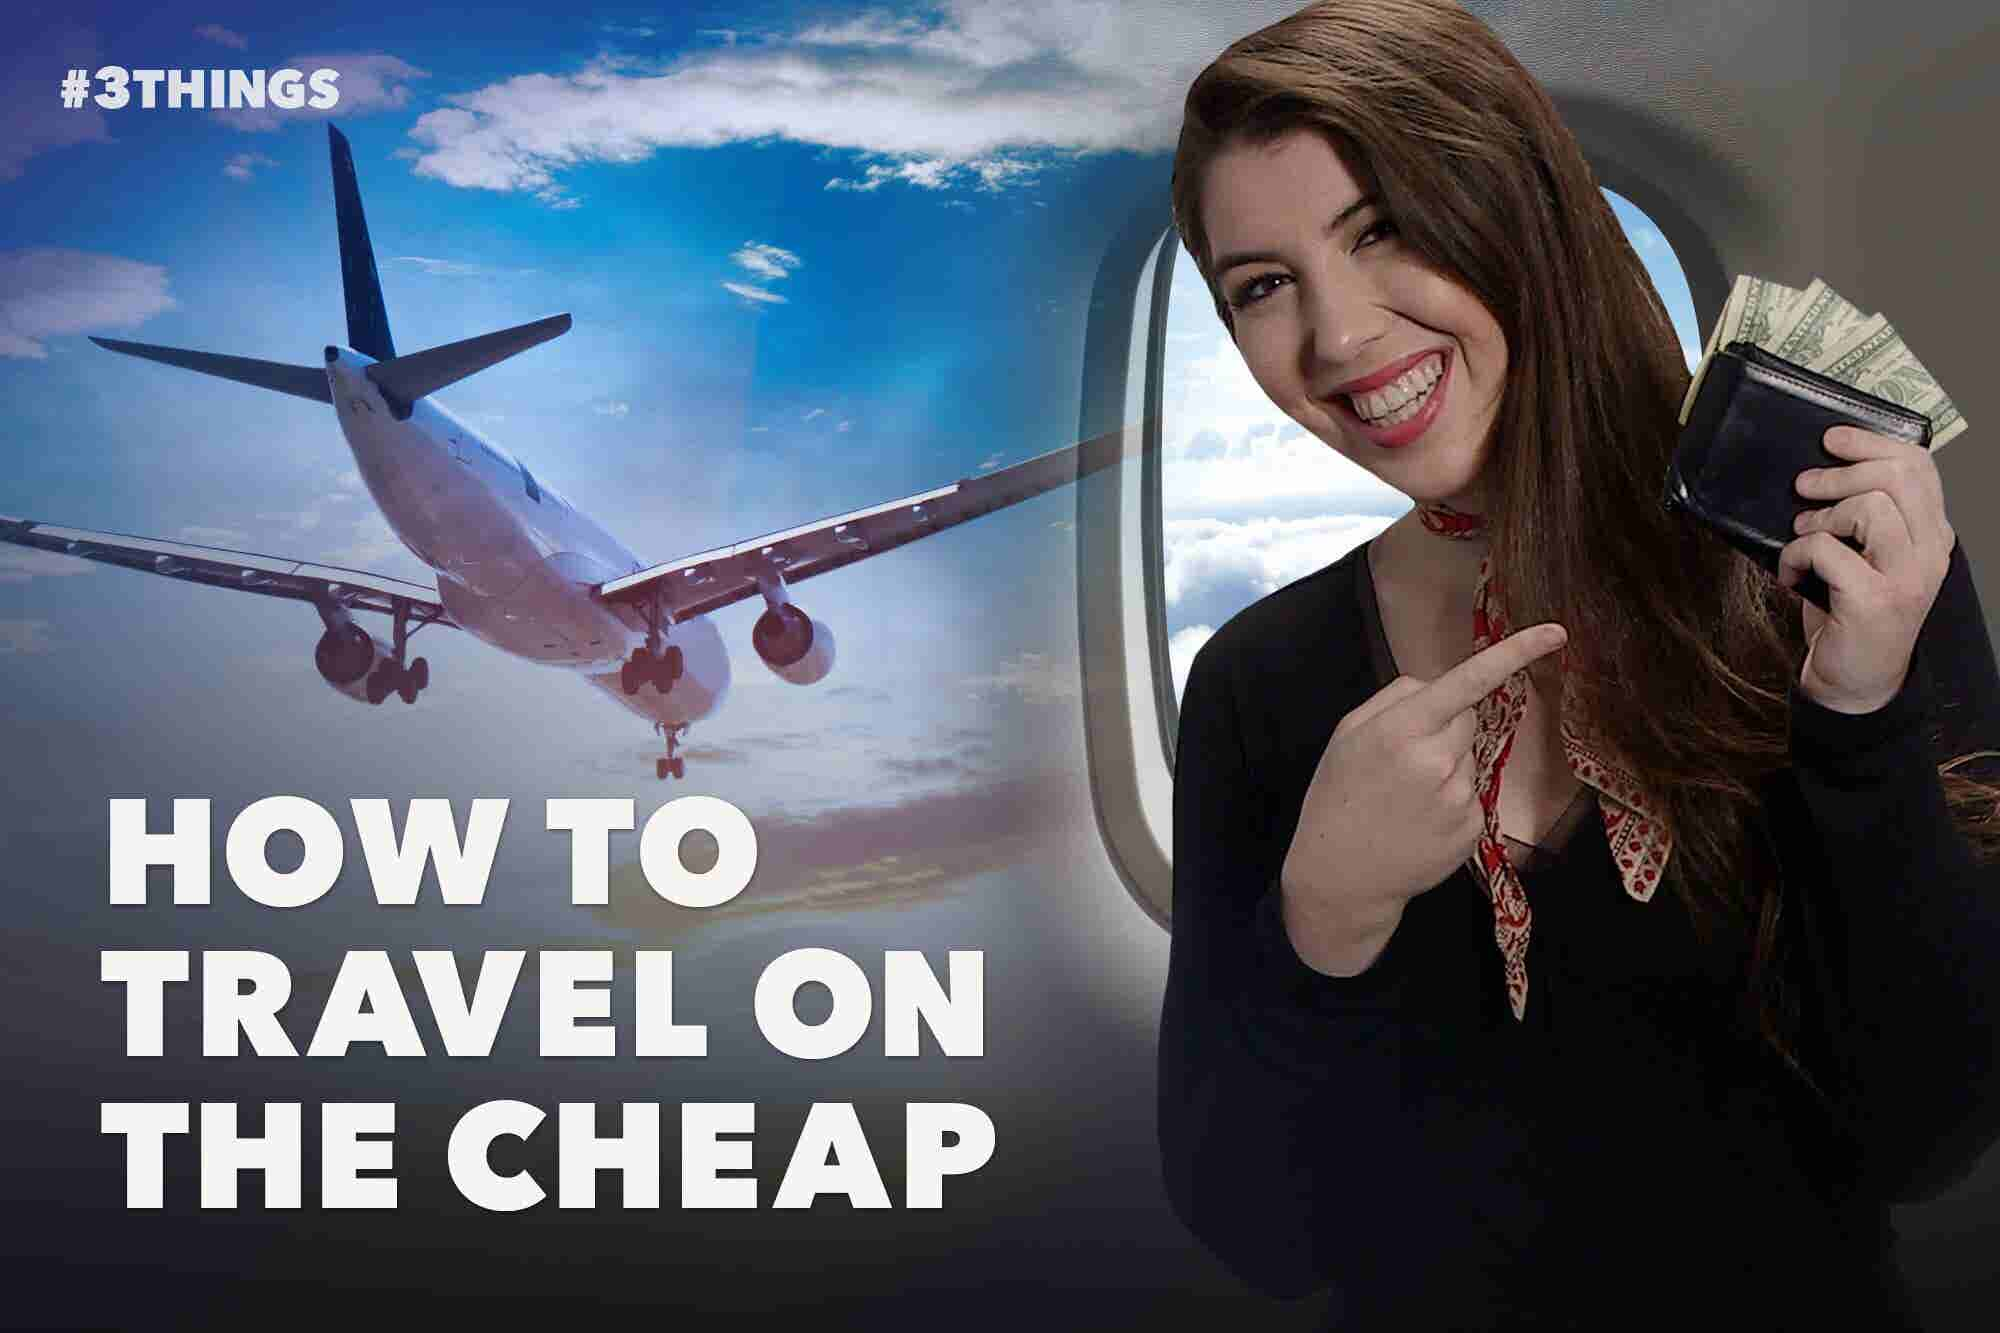 Booking a Flight? Here Are 3 Ways to Save. (60-Second Video)